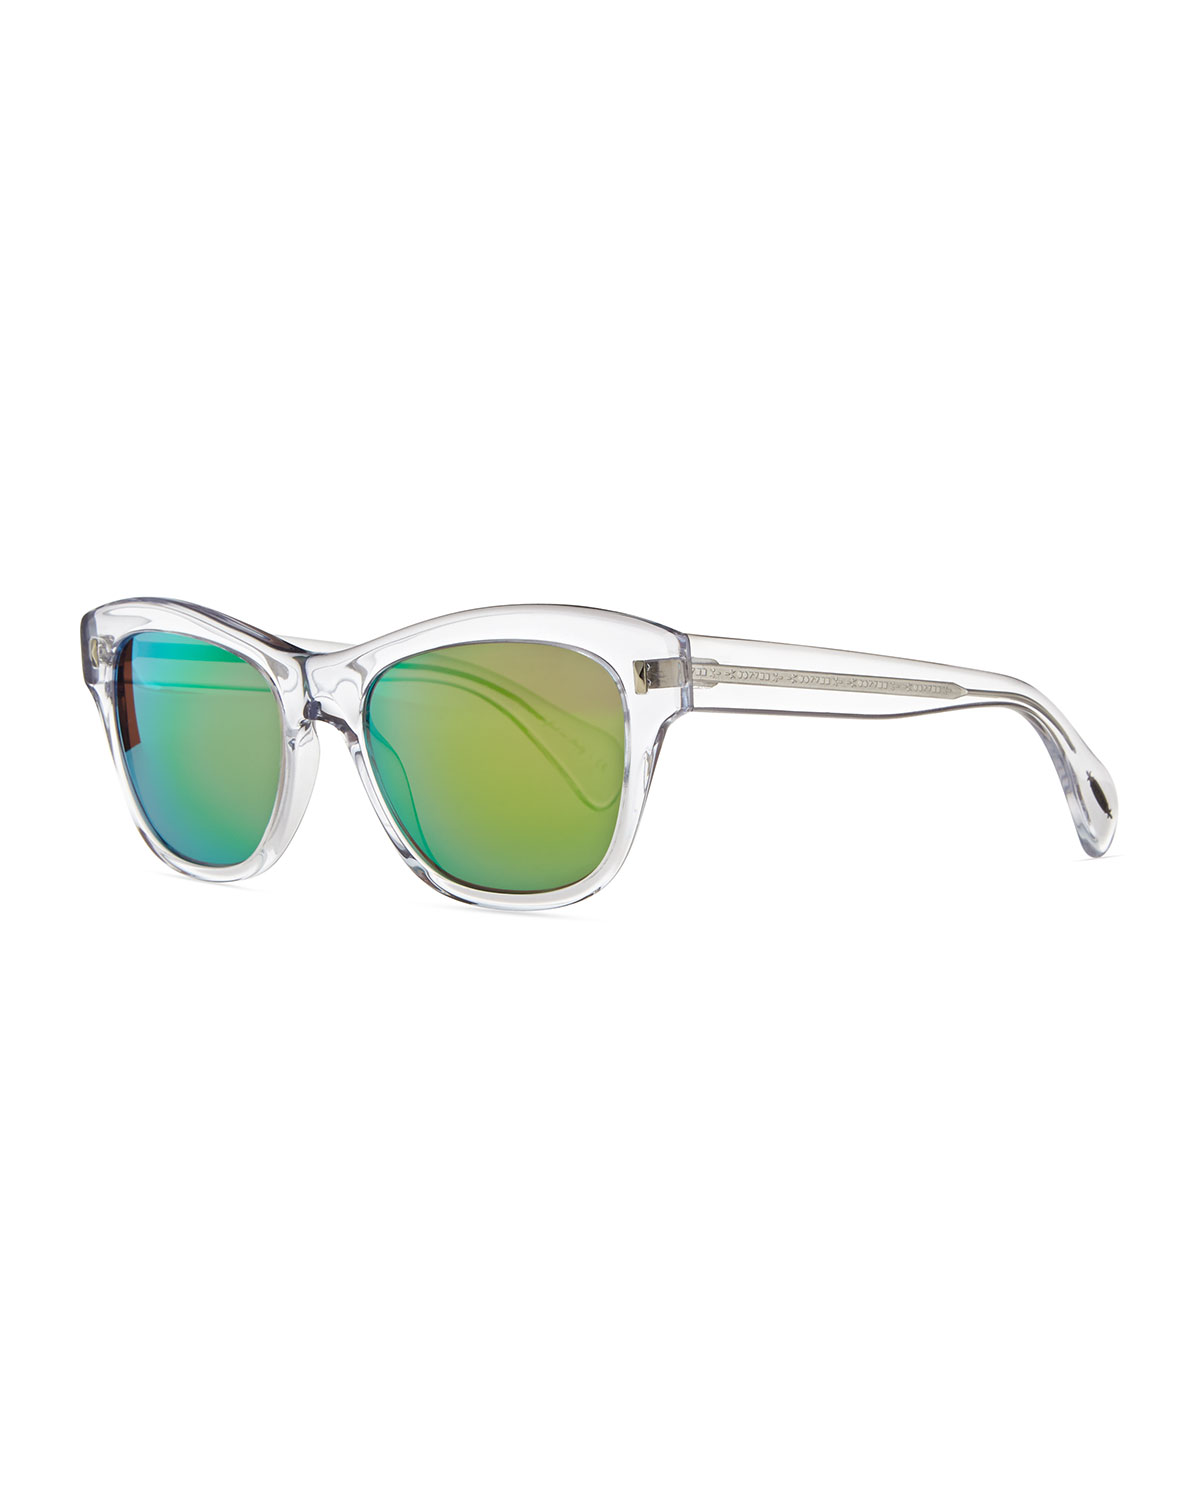 Oliver Peoples Sofee 53mm Polarized Sunglasses, Clear/Mirror Green, Cry-Green Mirror